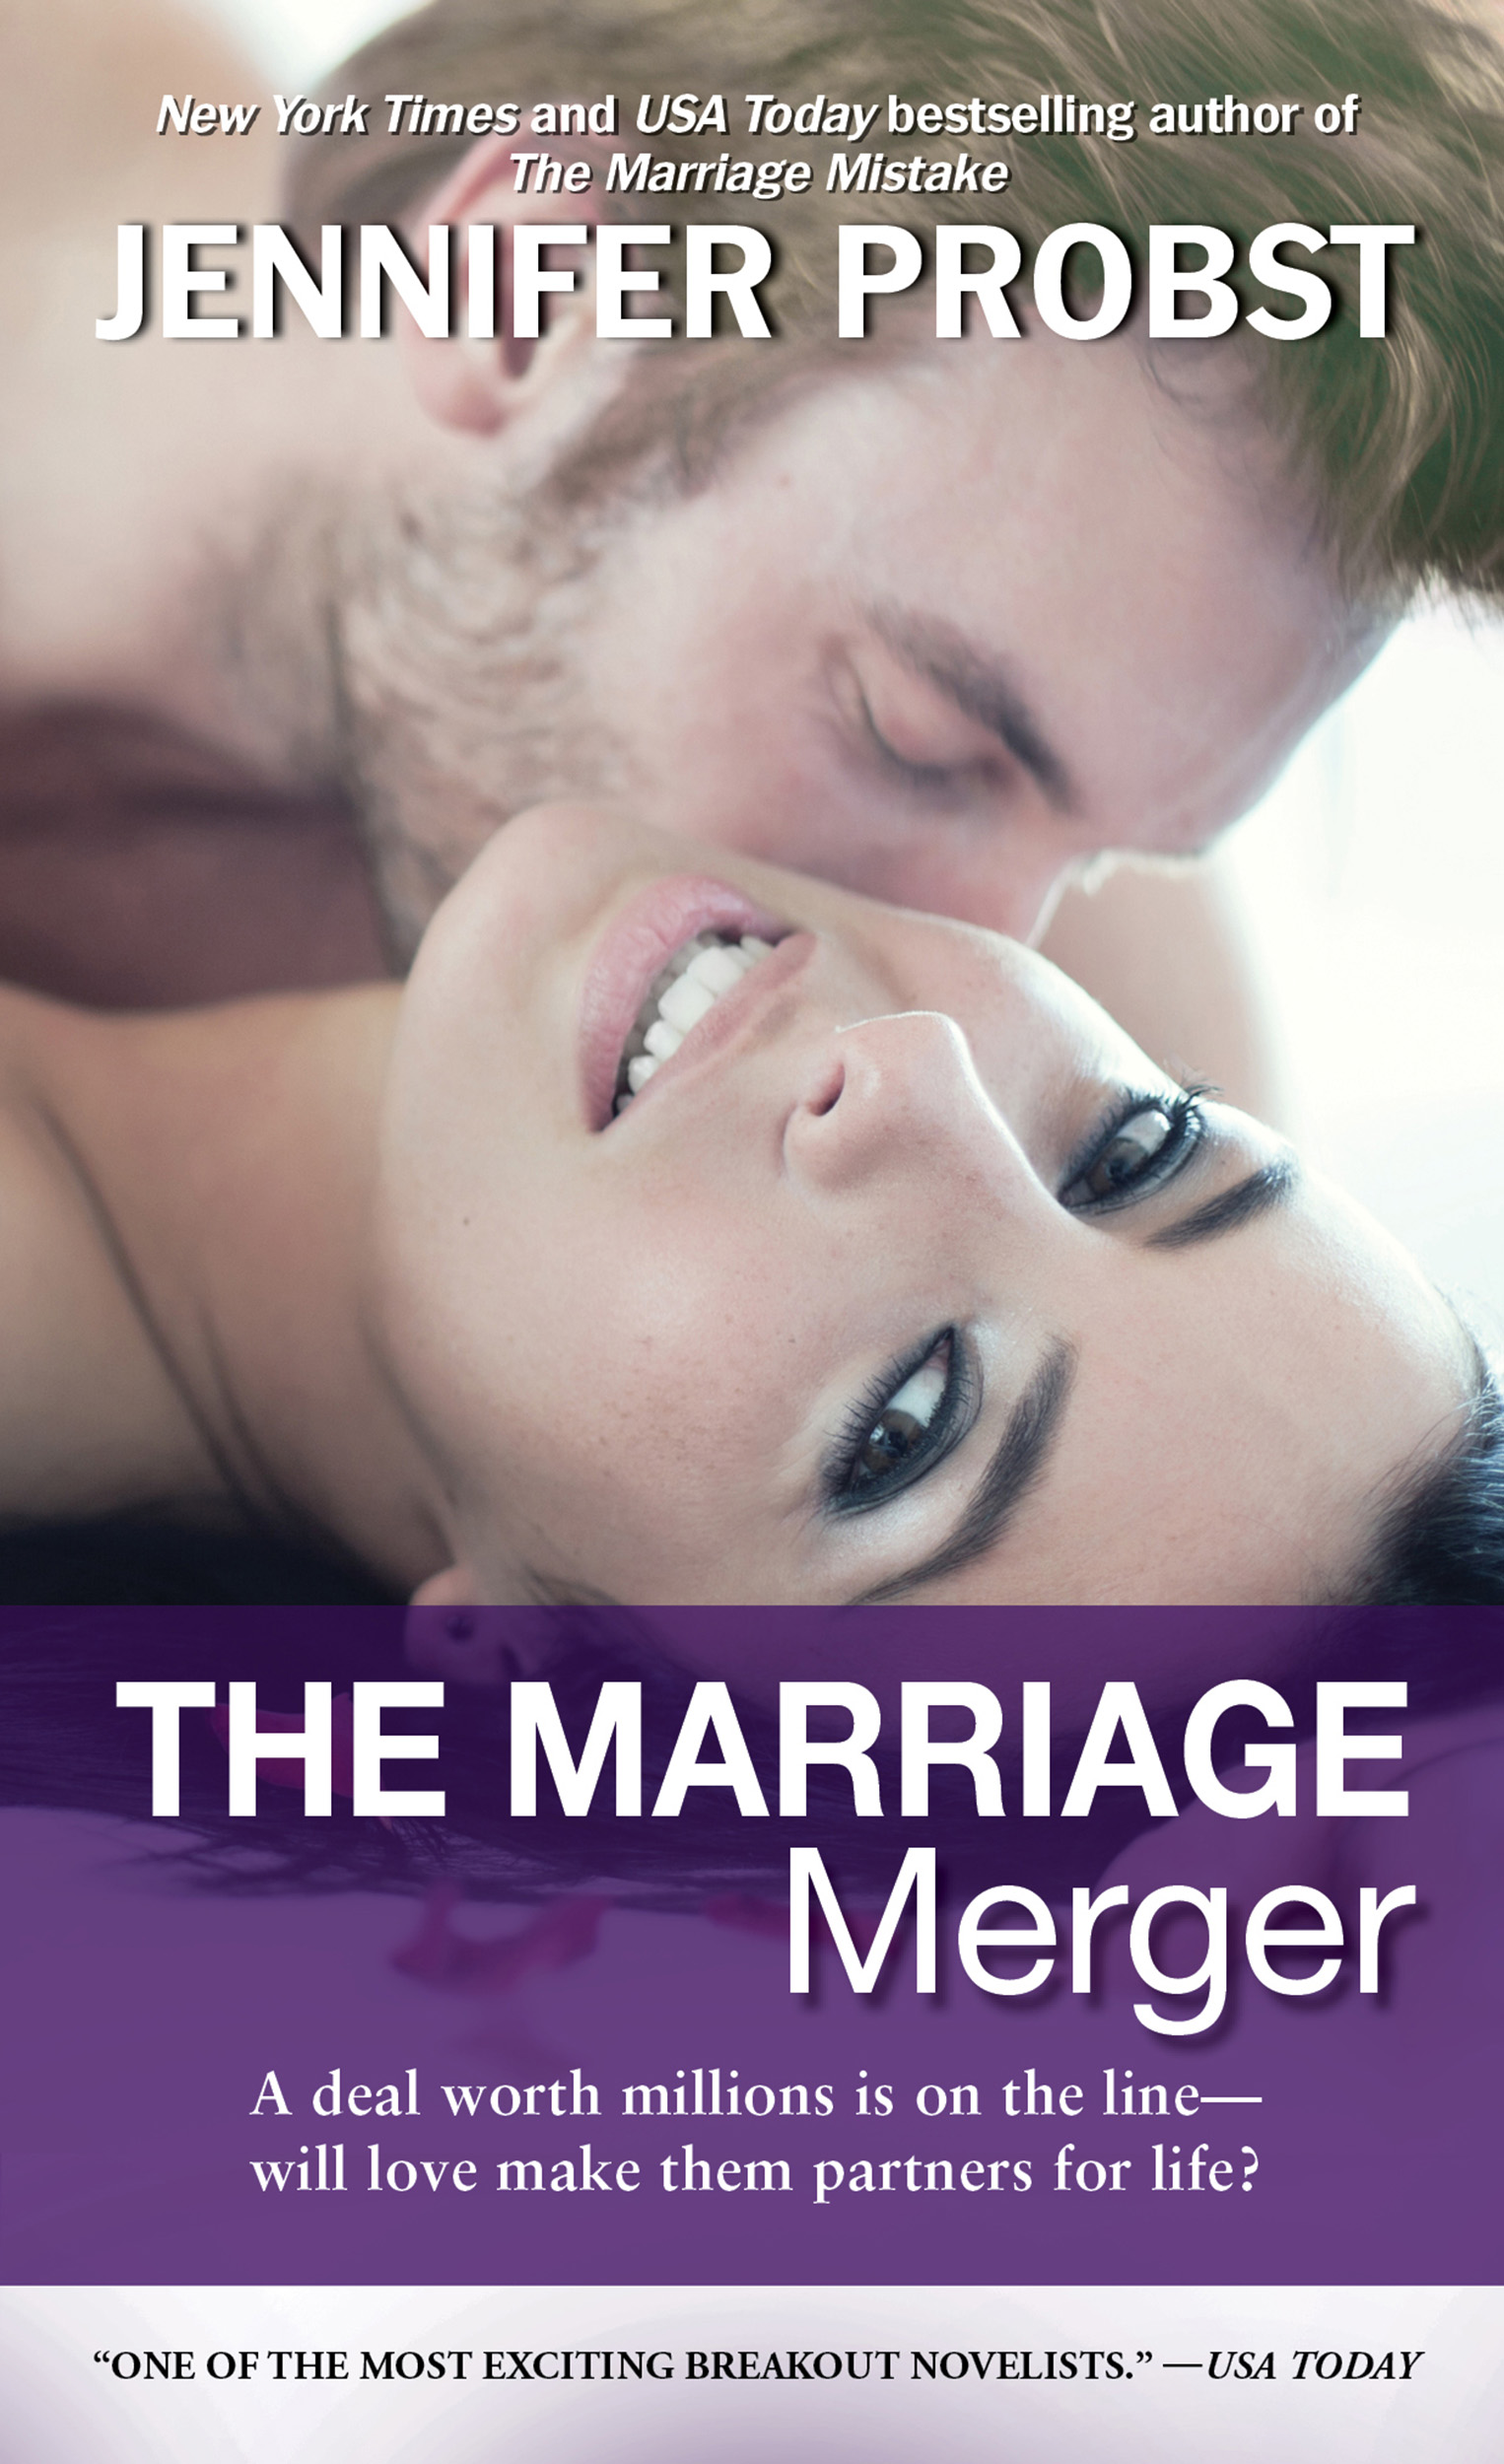 The Marriage Merger by Jennifer Probst graphic